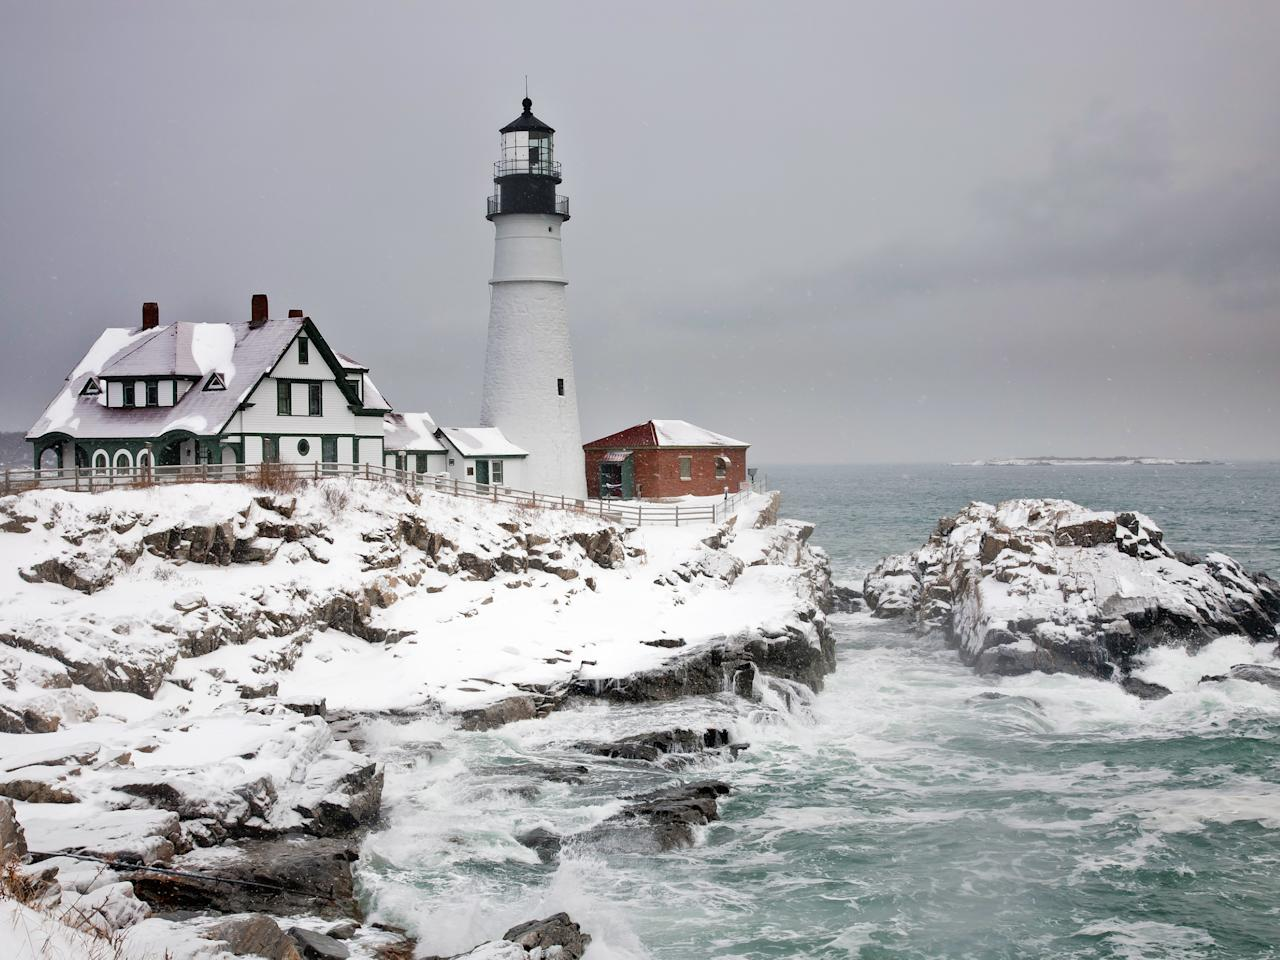 """It's important to stay busy to avoid cabin fever during New England winters (see: any Stephen King novel); luckily, cities like <a rel=""""nofollow"""" href=""""https://www.cntraveler.com/story/how-portland-maine-keeps-getting-cooler?mbid=synd_yahoo_rss"""">Portland</a> make getting outside downright appealing. The city—the most populous in Maine—comes alive with activities during the winter, from cross-country skiing to ice skating on Deering Oaks Pond. Get there in late January to participate in Winterfest (January 25-28), a well-known annual festival that includes horse-drawn carriage rides, s'mores around fire pits, cardboard sledding, and food trucks."""